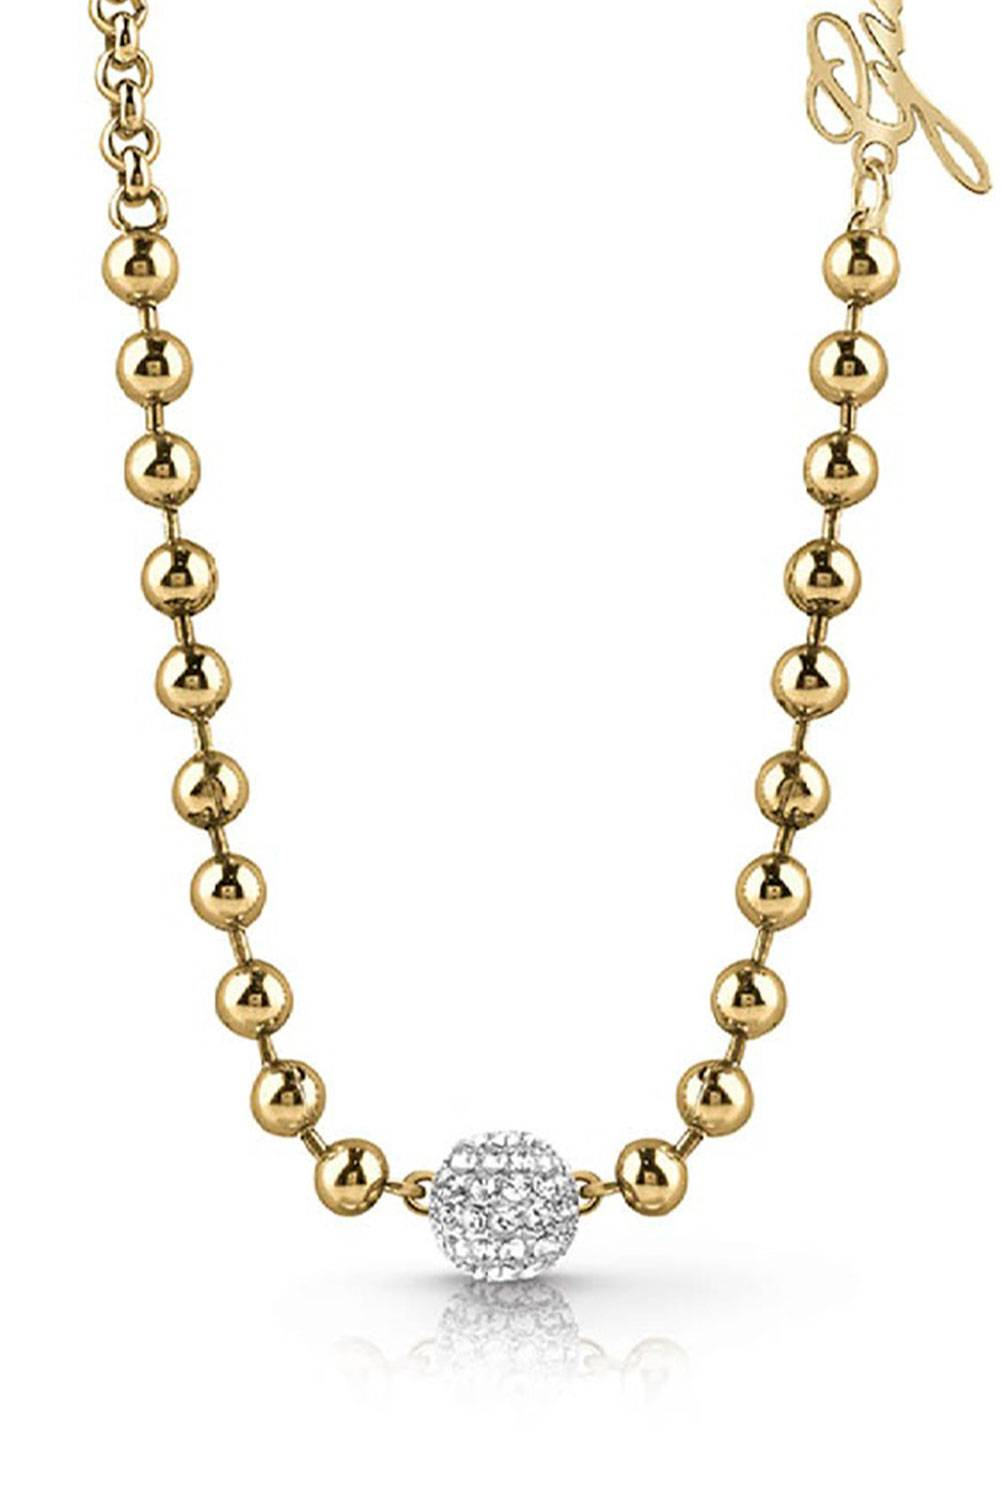 Guess - Collar Guess Pompom UBN78050